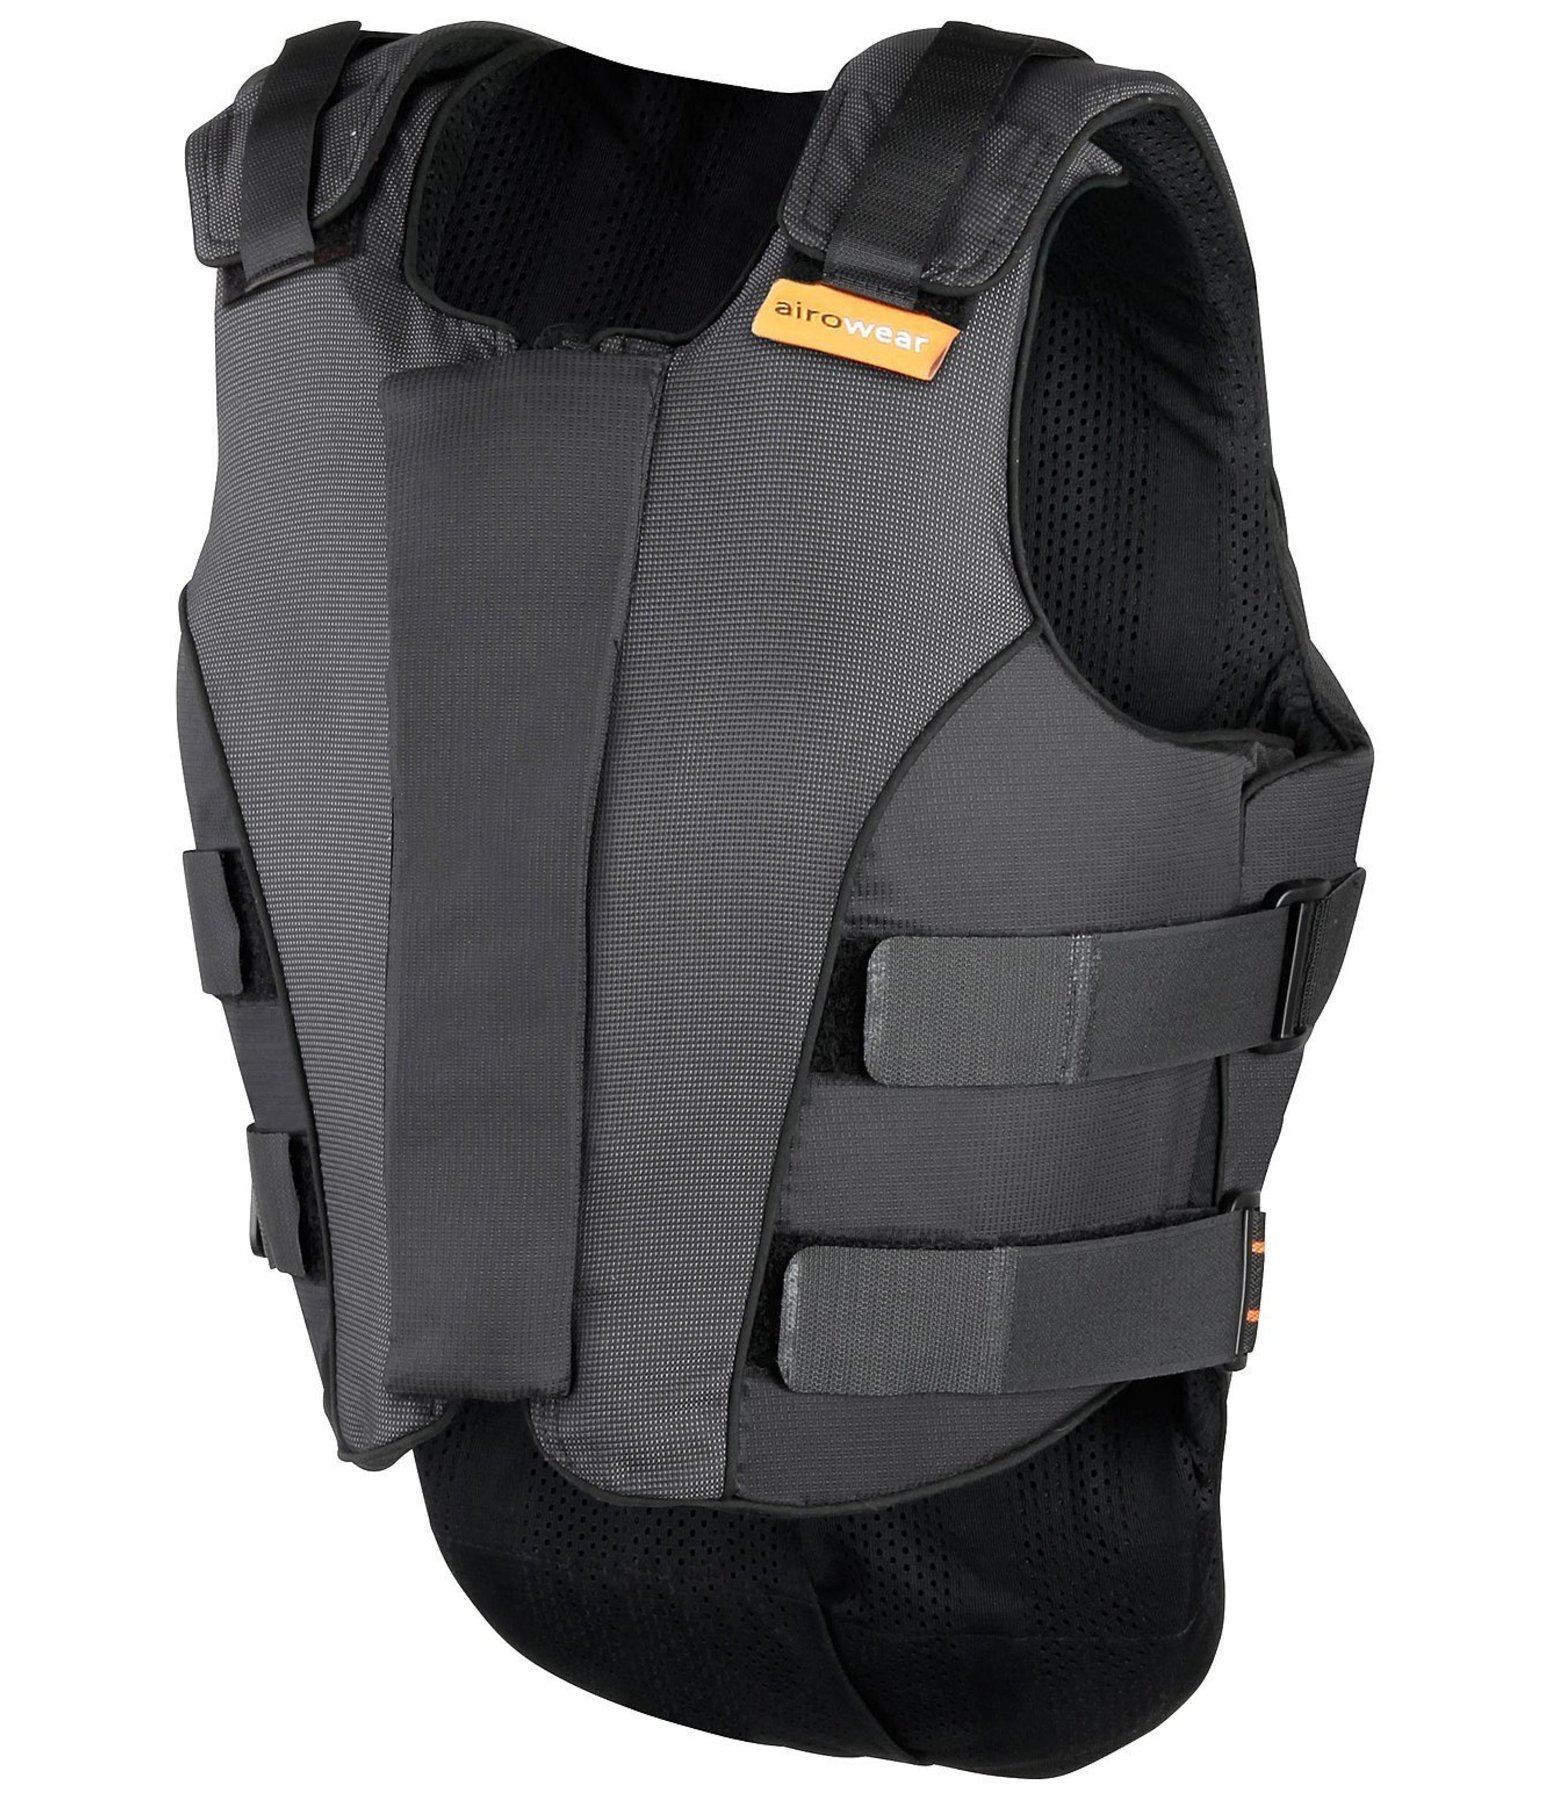 Women's Body Protector Outlyne